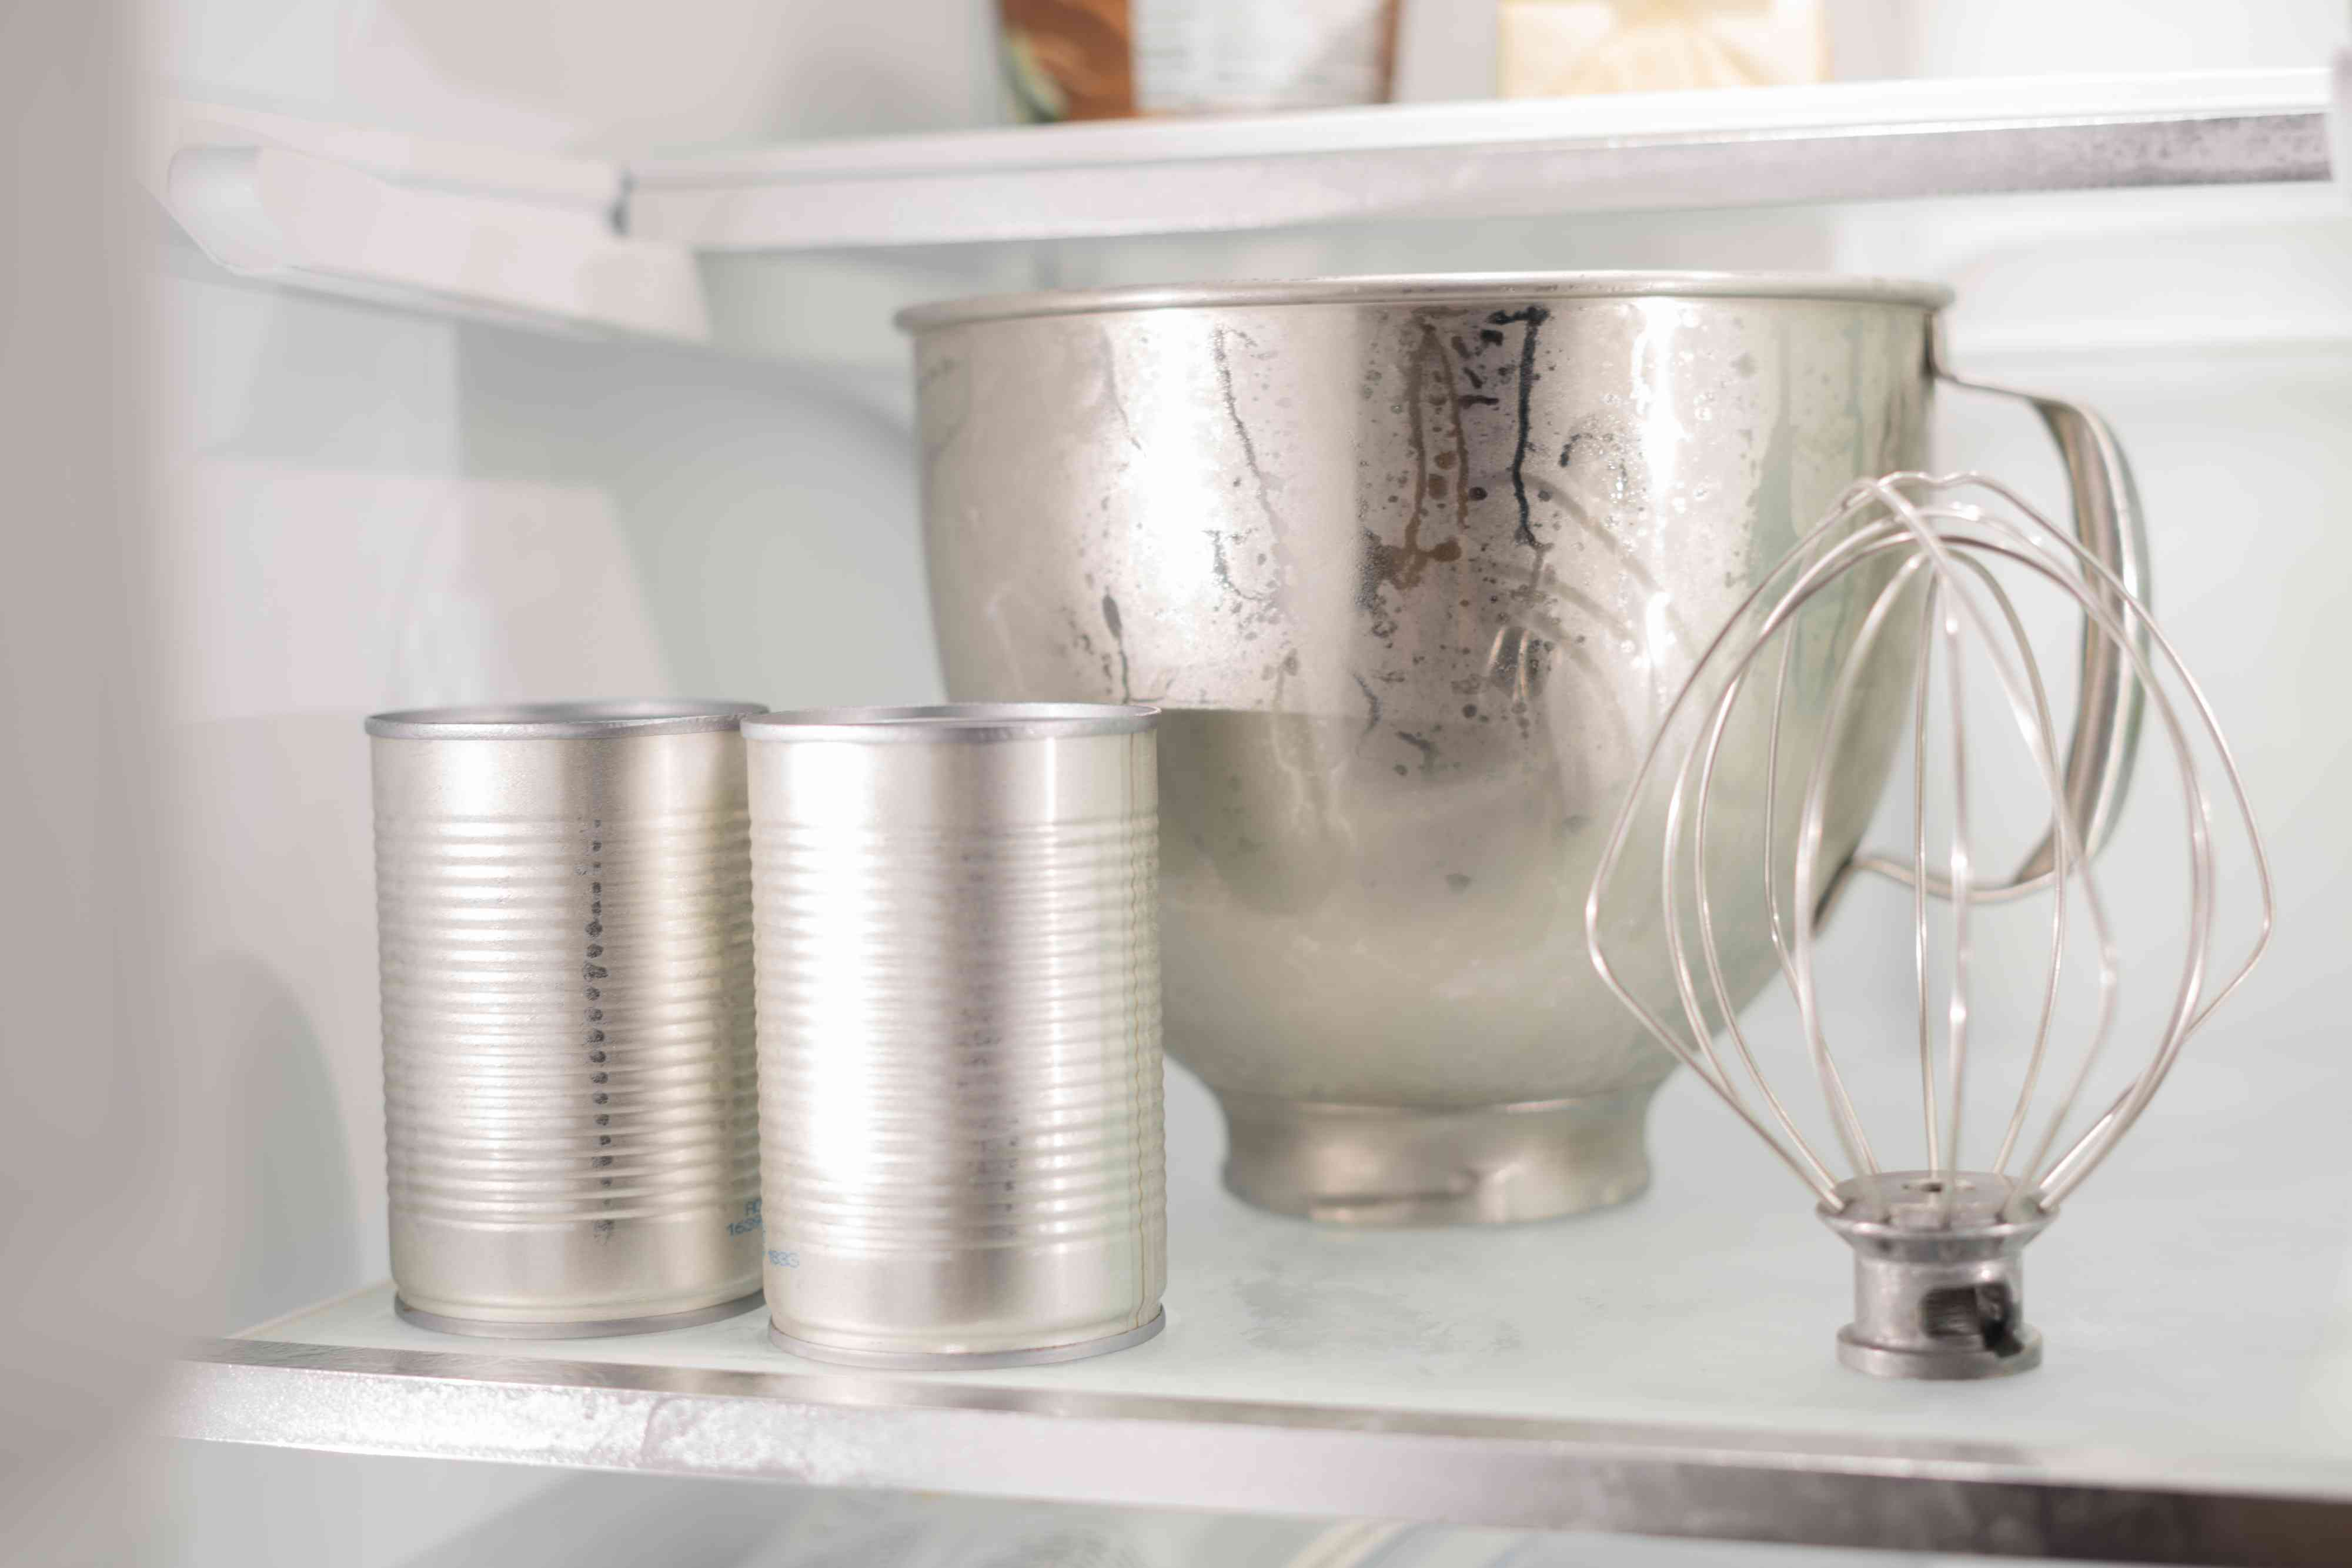 Place the canned coconut milk along with the mixing bowl into the refrigerator